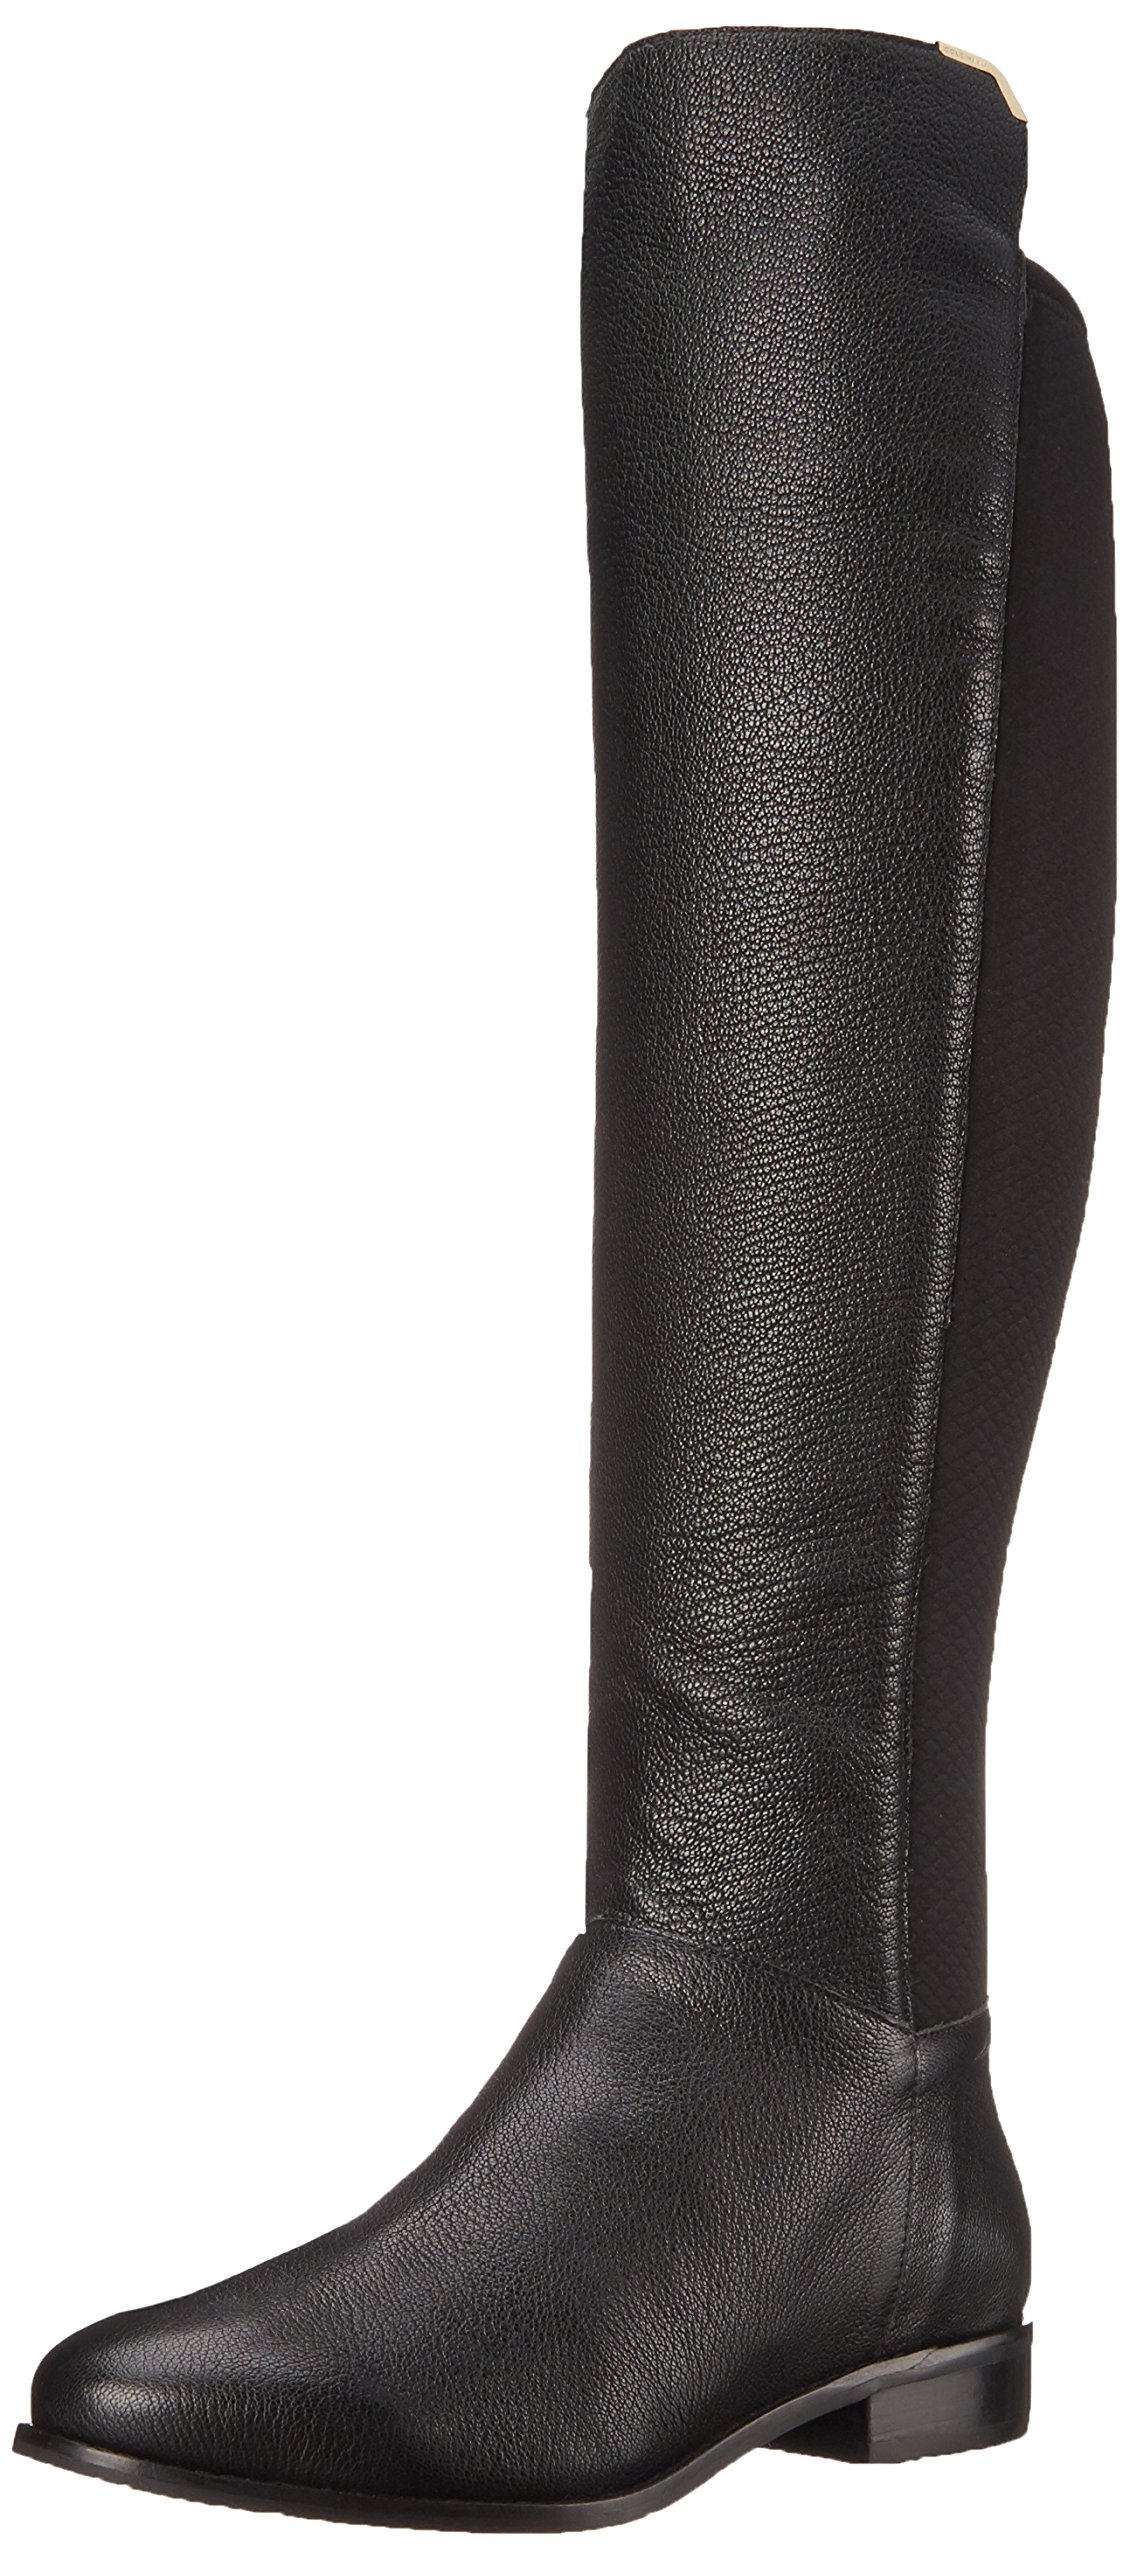 Cole Haan Women's Dutchess OTK Motorcycle Boot, Black Leather, 9.5 B US